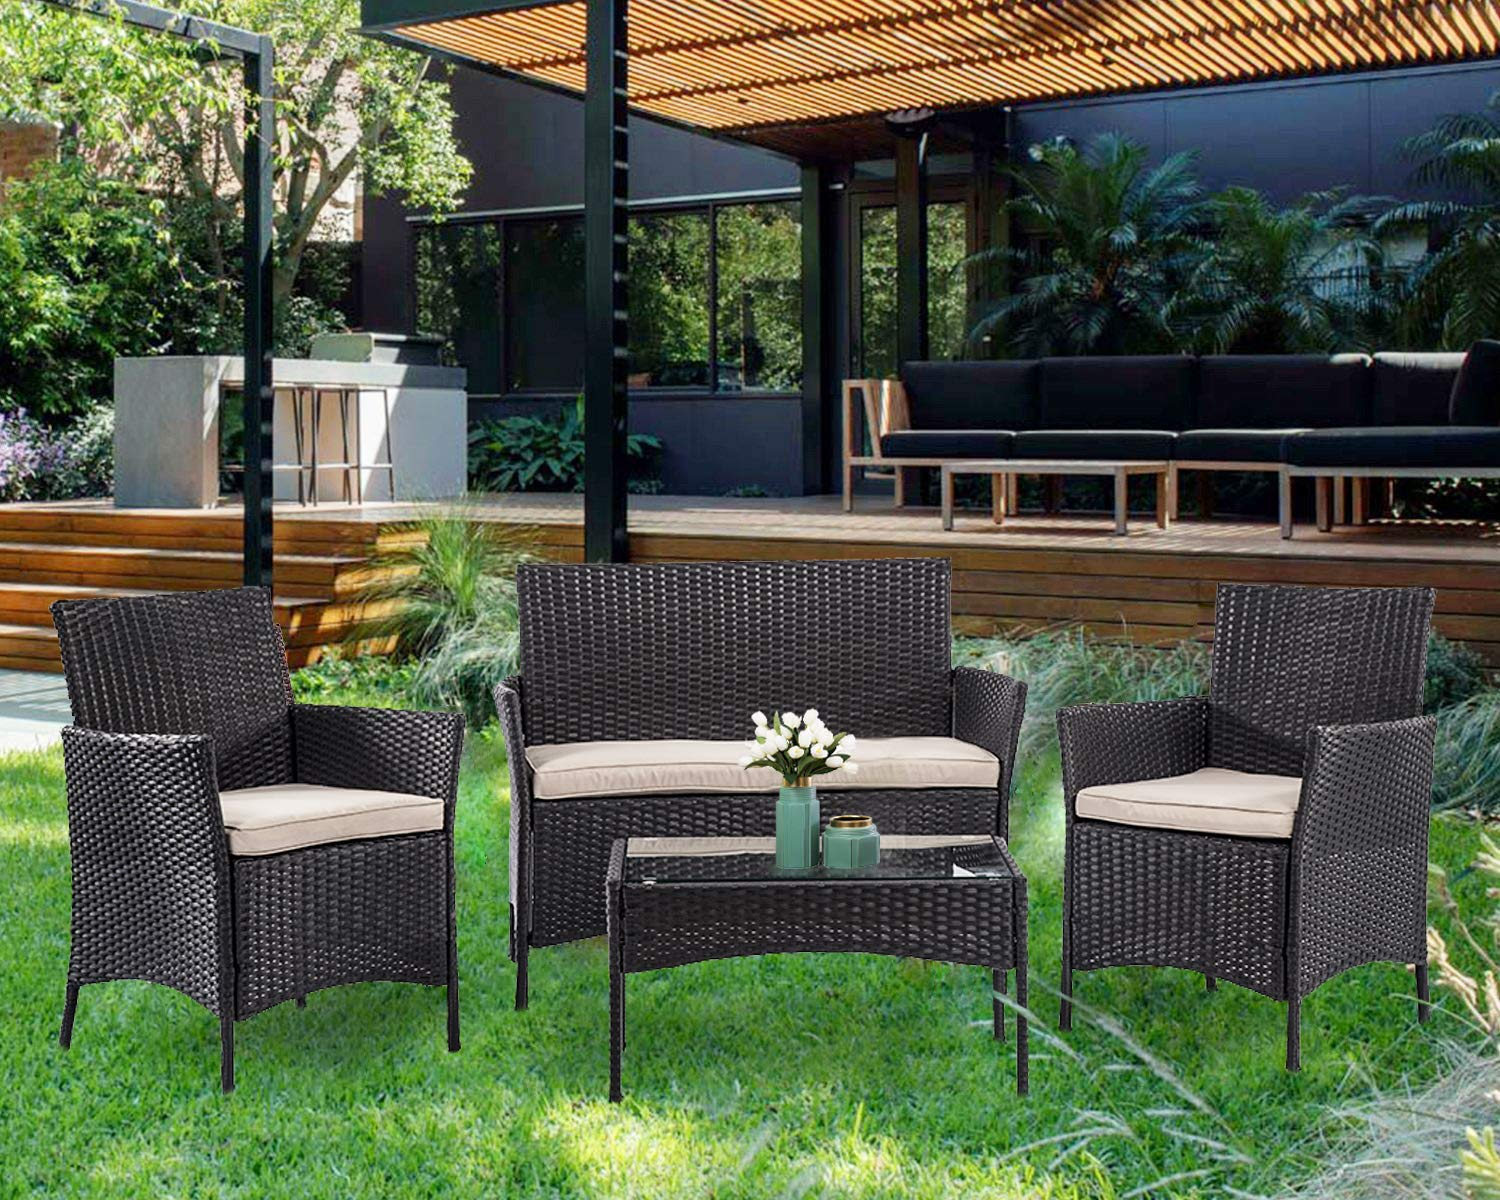 FDW Wicker Patio Furniture 4 Piece Patio Set Chairs Wicker Sofa Outdoor Rattan Conversation Sets Bistro Set Coffee Table for Yard or Backyard